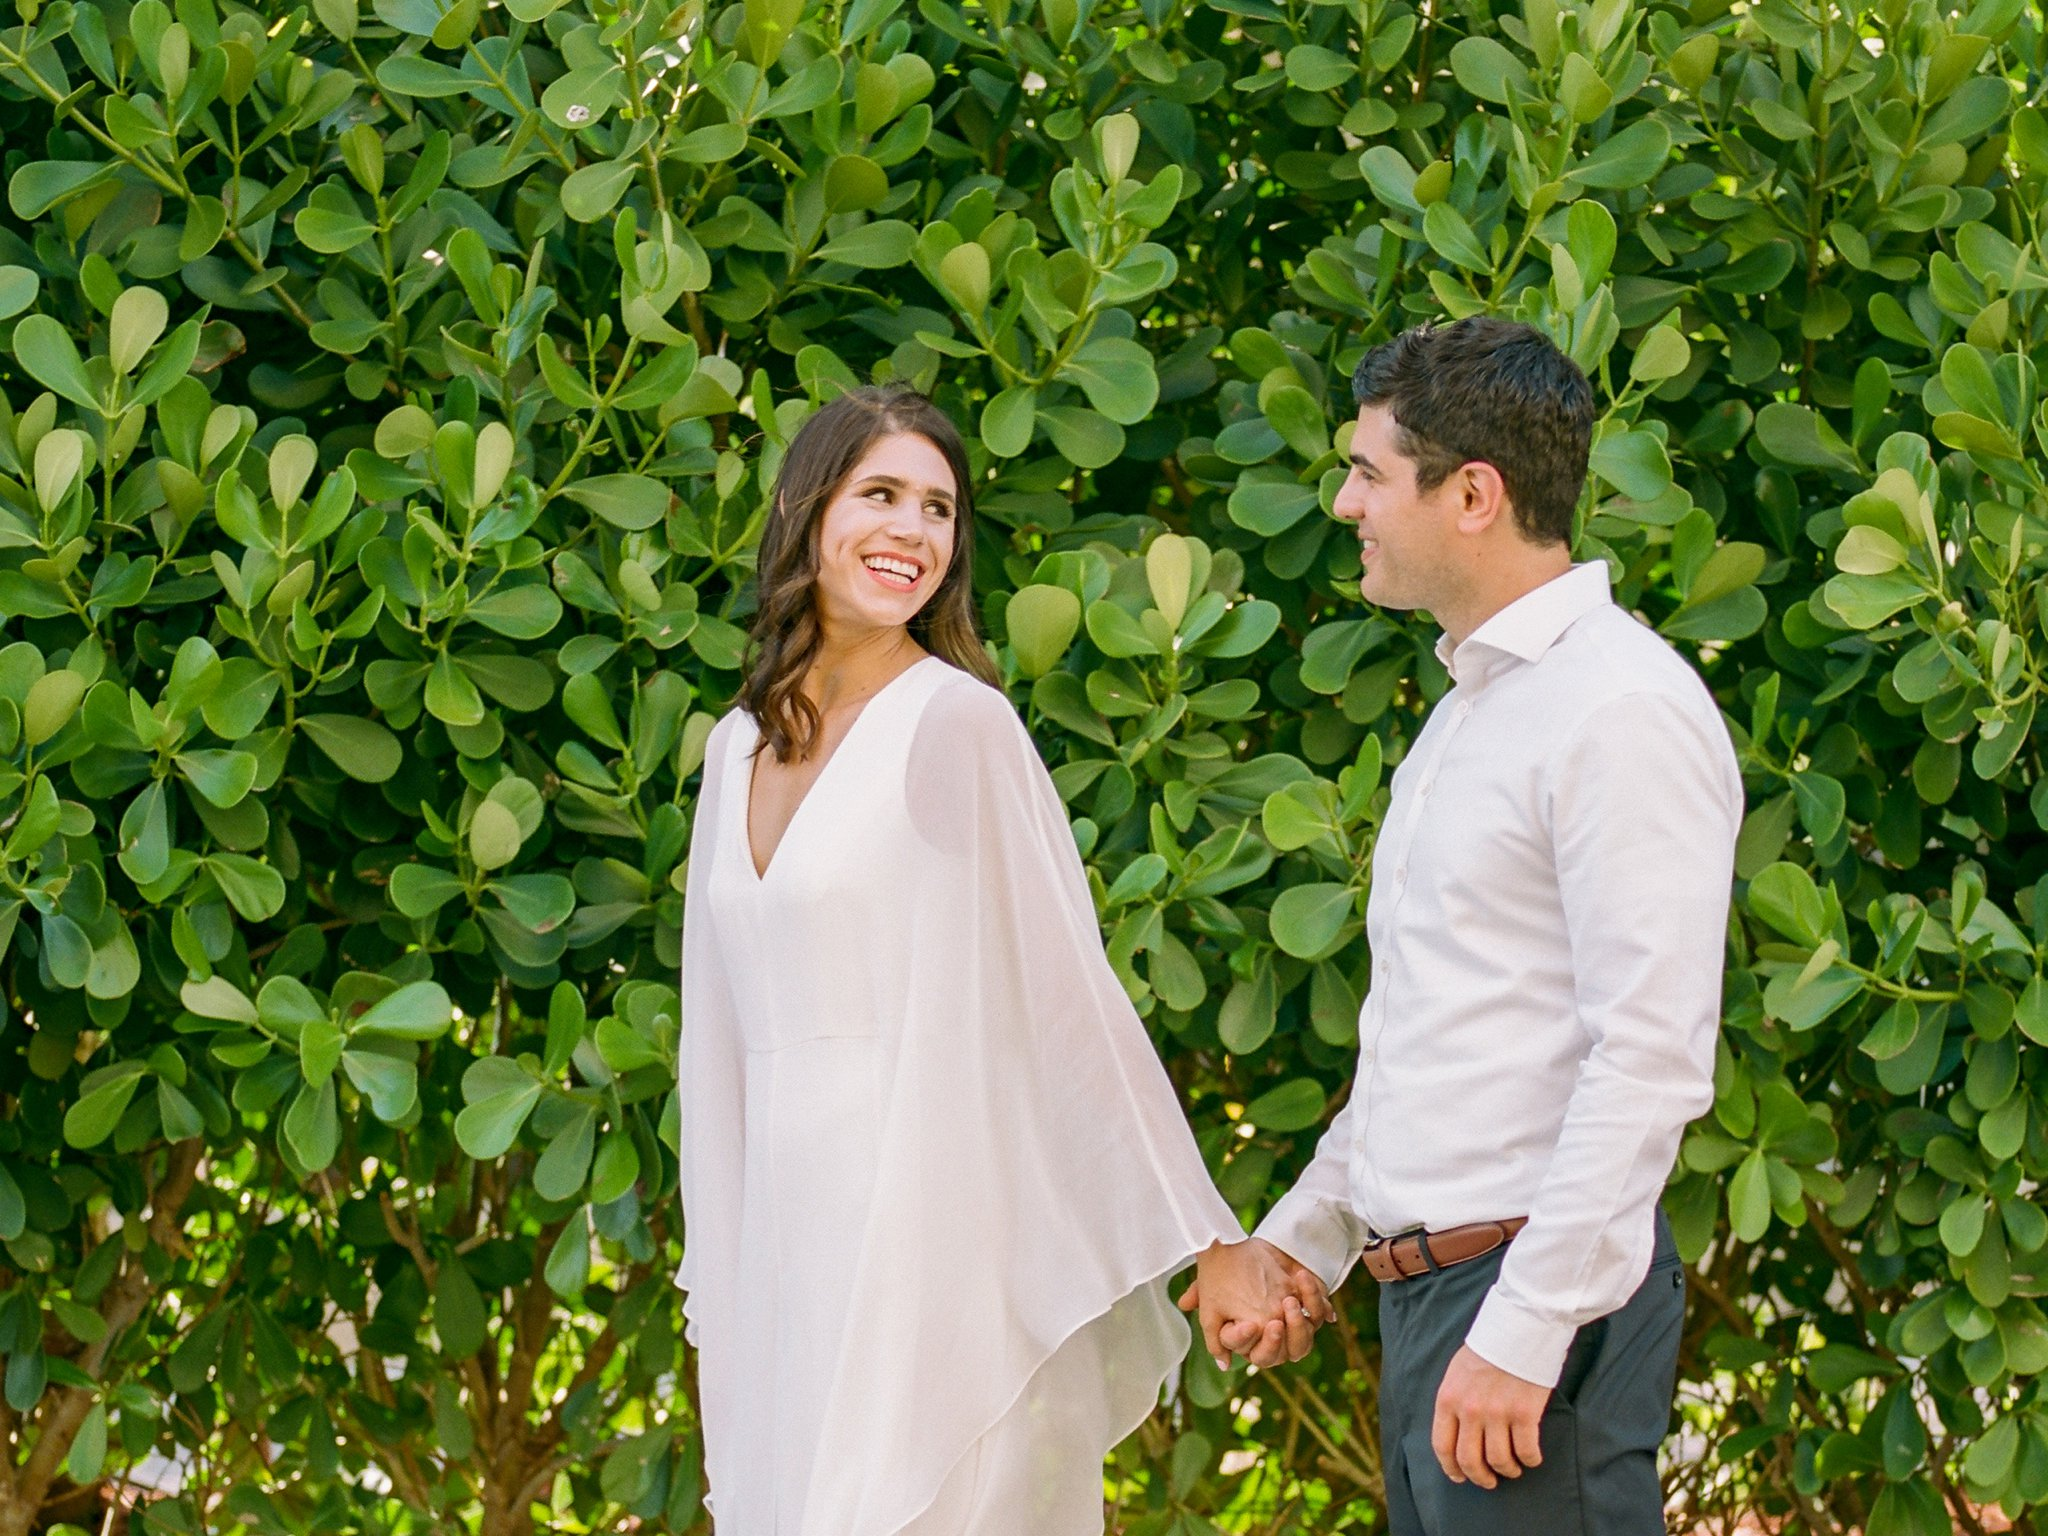 jw marriott marco island engagement session marco island wedding photographer shannon griffin photography_0003.jpg